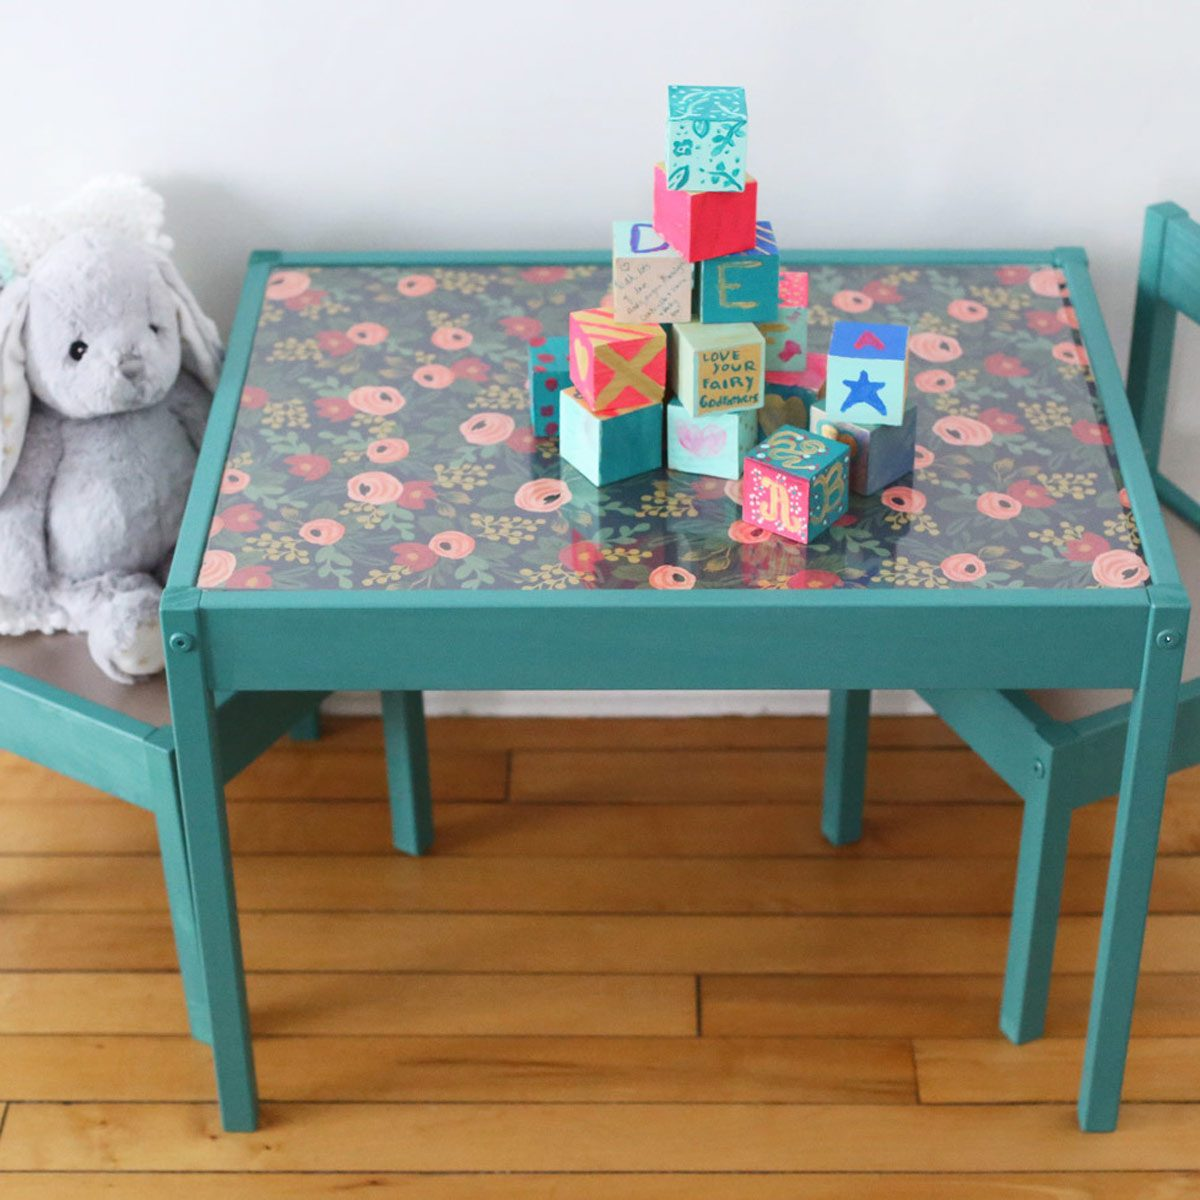 ikeaids-table-uncategorizedid-set-l-tt-children-s-and-chairs-its-latt-hack-chairsikea-1 kids table